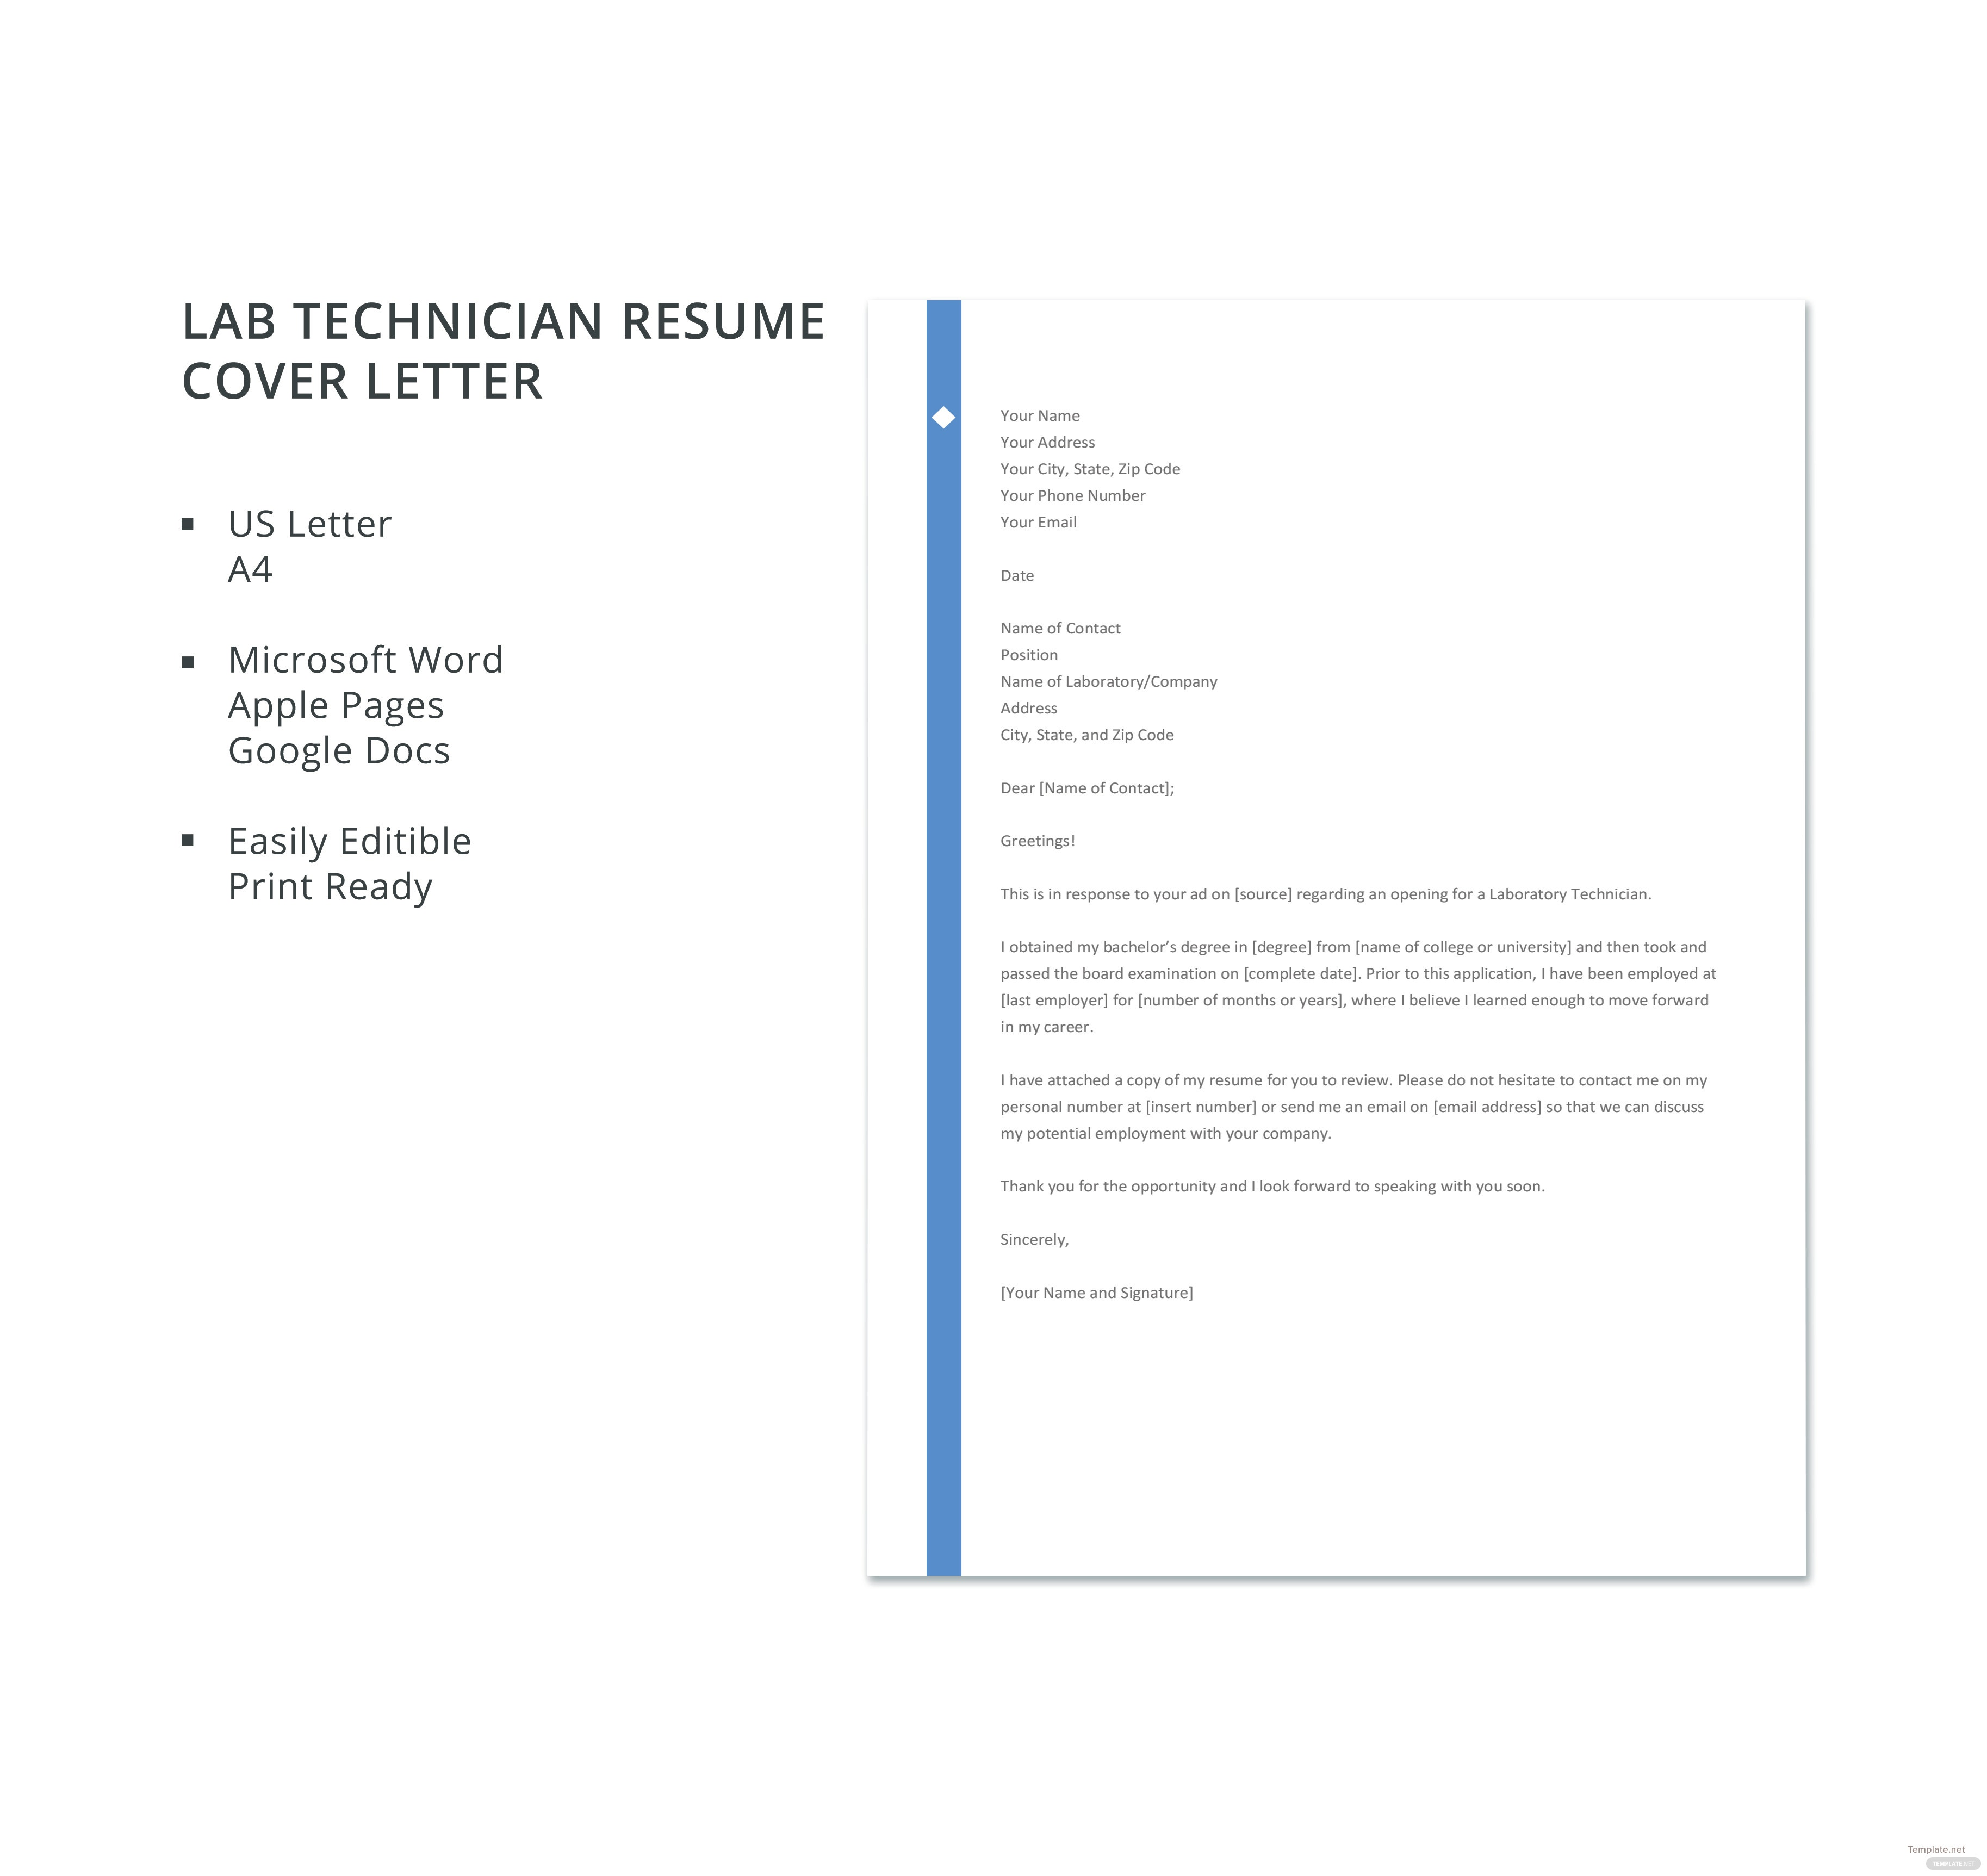 free lab technician resume cover letter template in microsoft word  apple pages  google docs